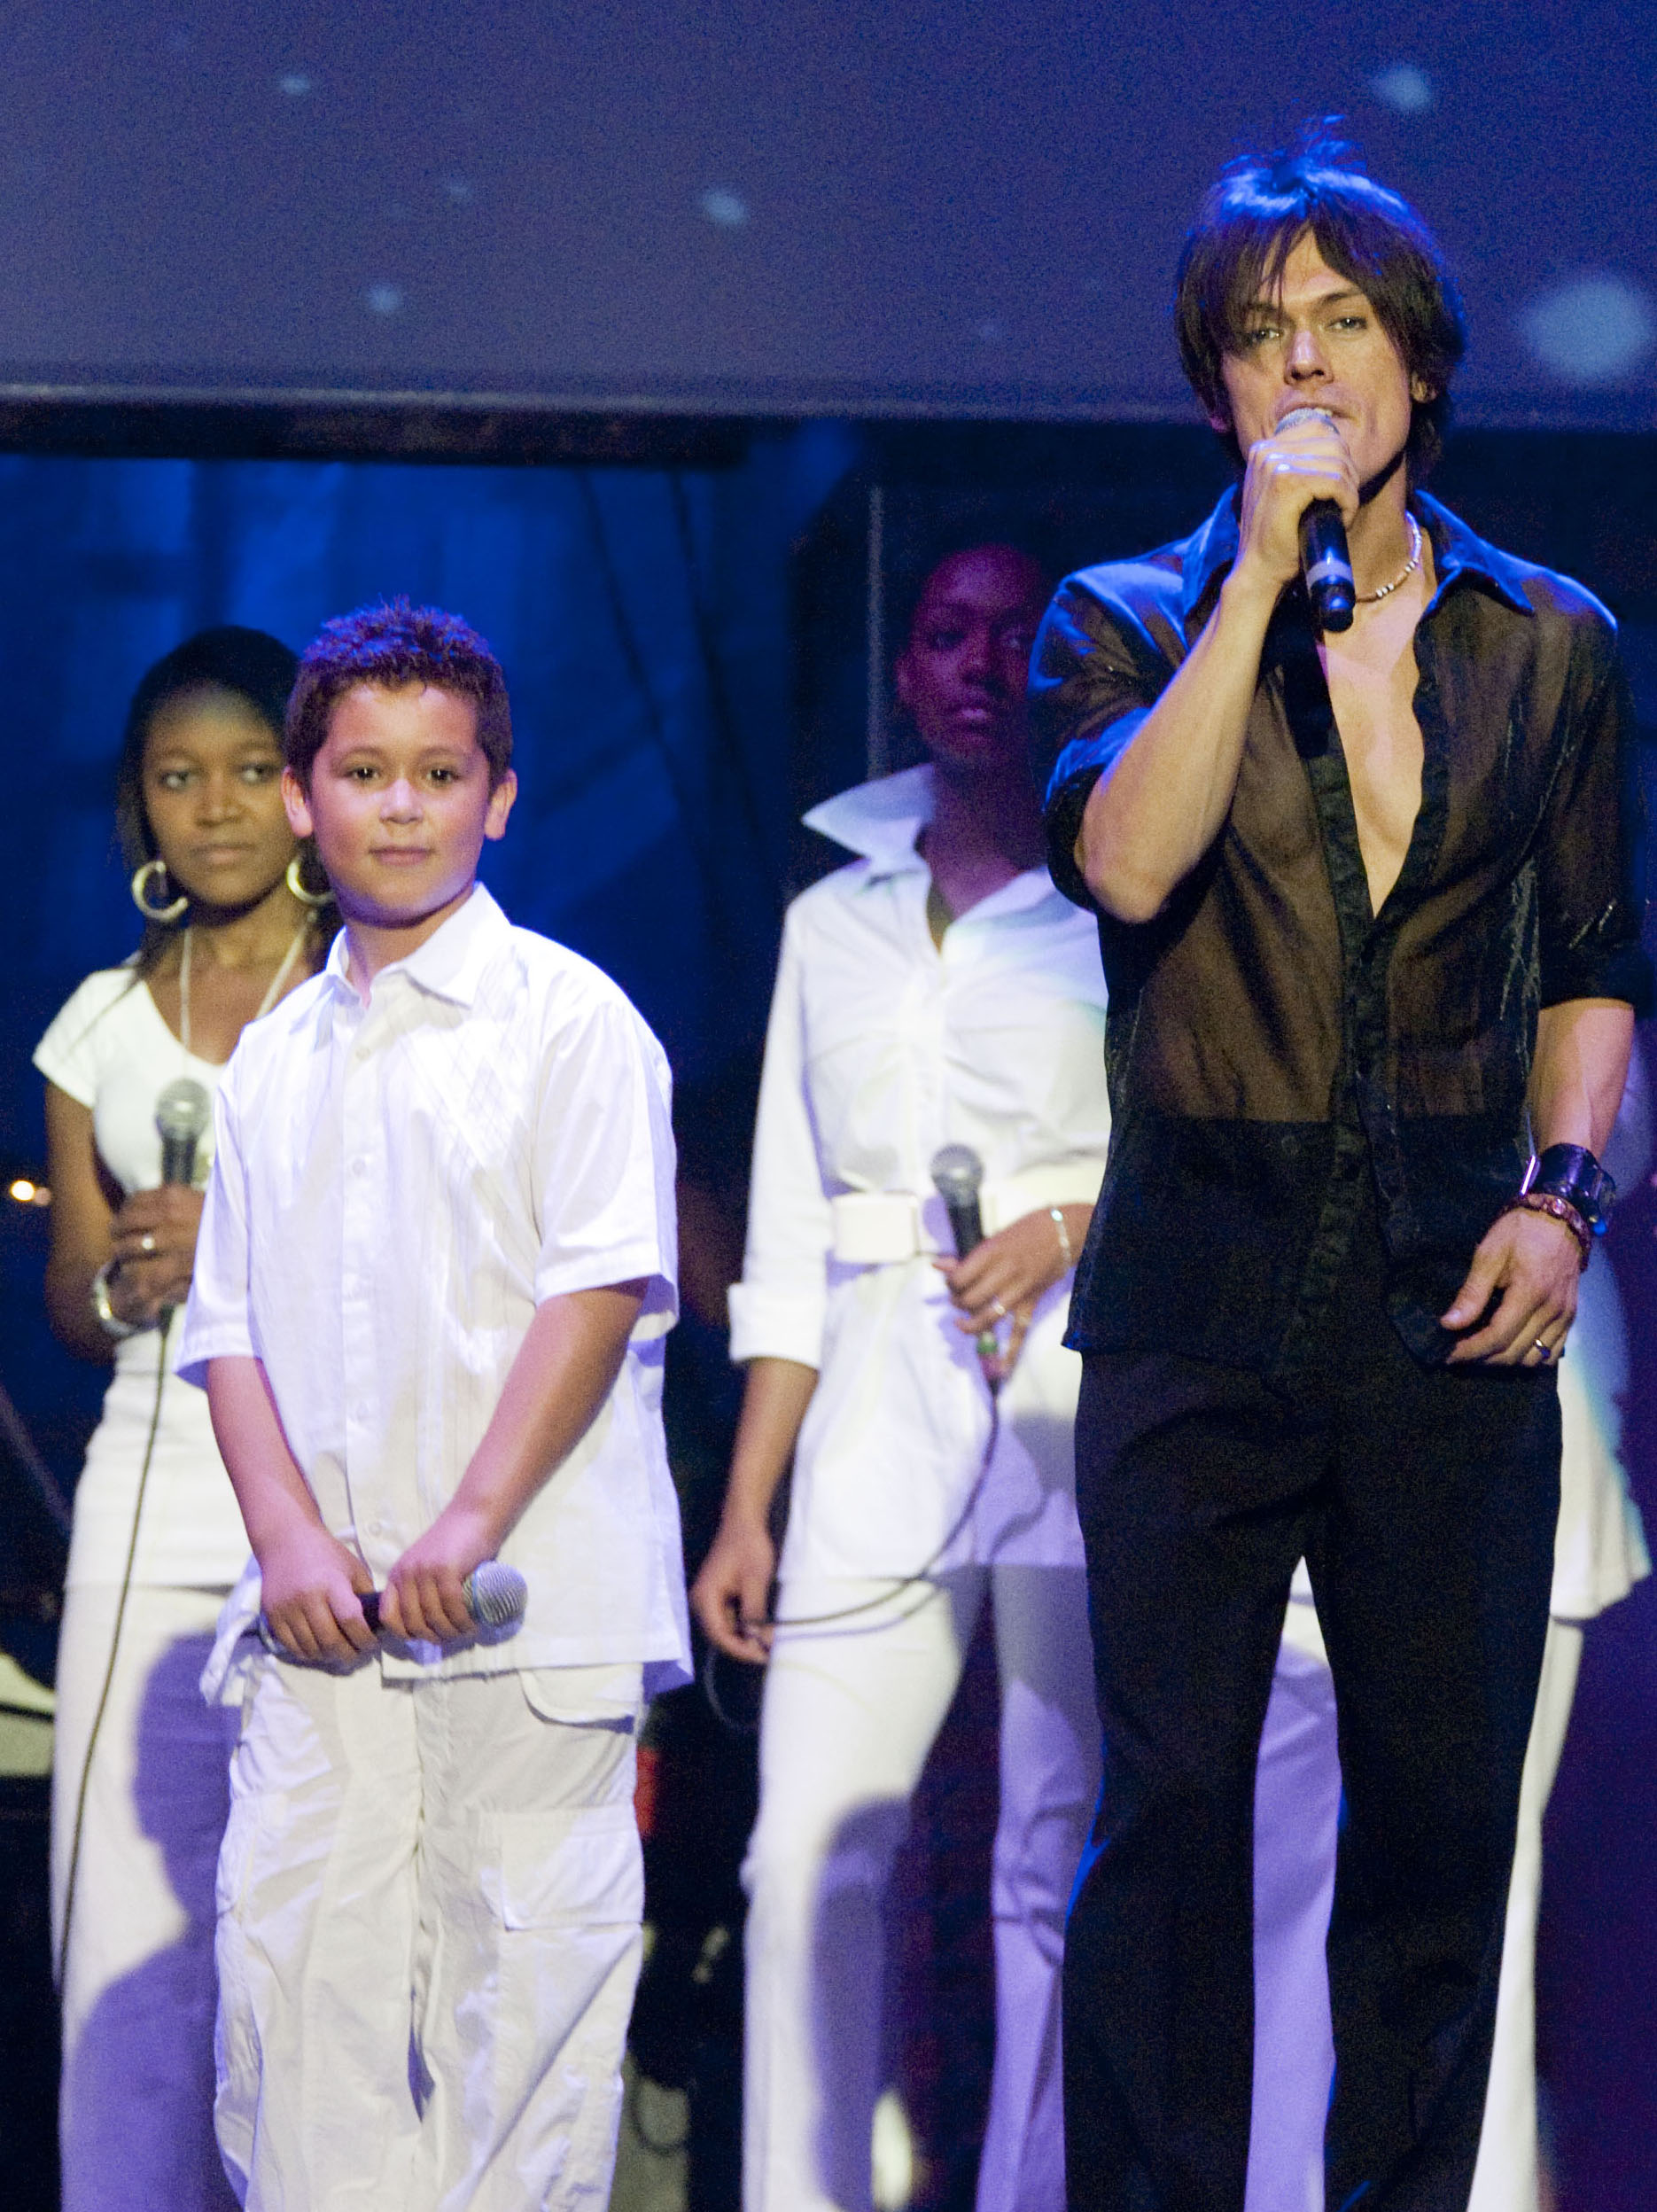 Britain's Got Talent Finalist Shaheen Jafargholi To Sing At Michael Jackson Memorial